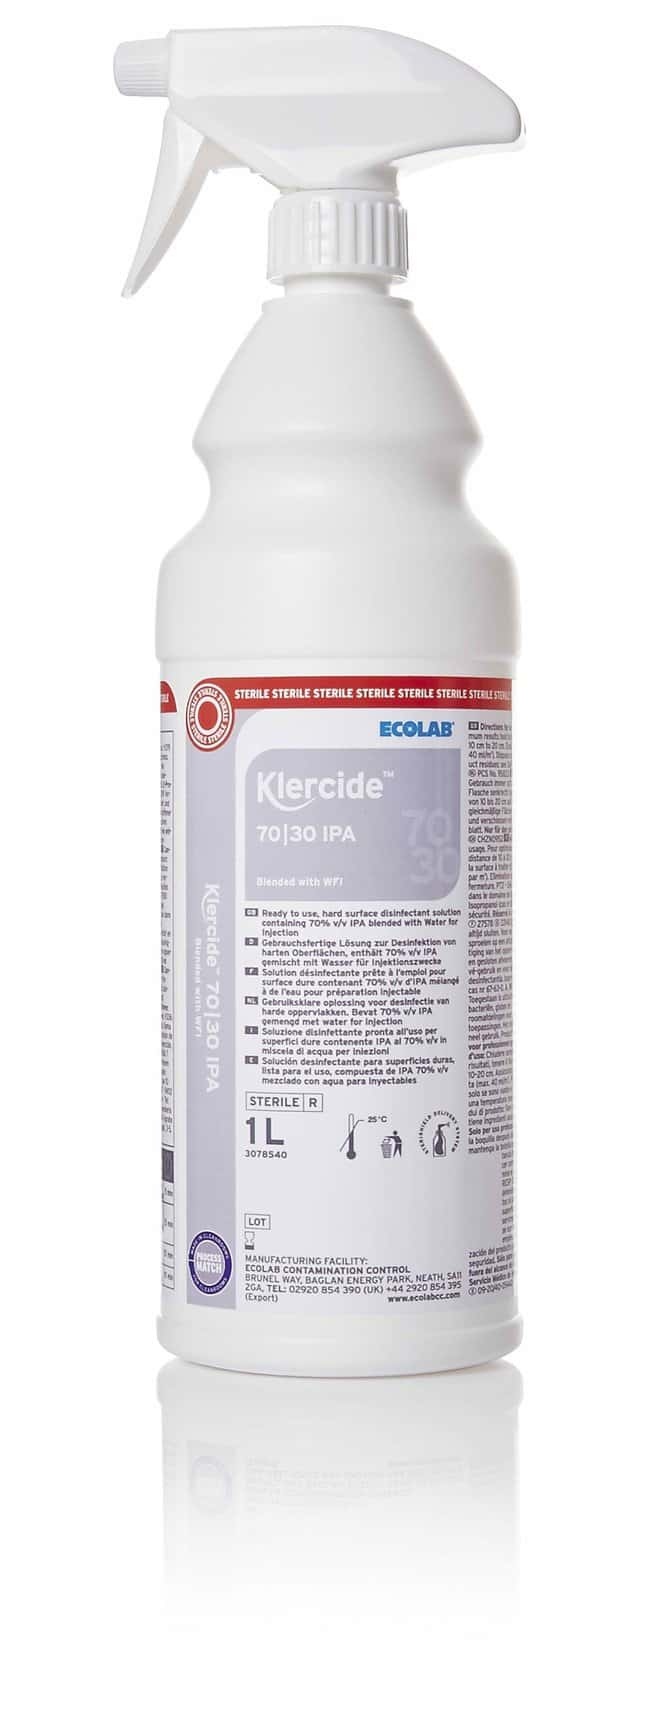 Ecolab™ Klercide™ 70/30 Isopropyl Alcohol Blended with WFI 1L Ecolab™ Klercide™ 70/30 Isopropyl Alcohol Blended with WFI